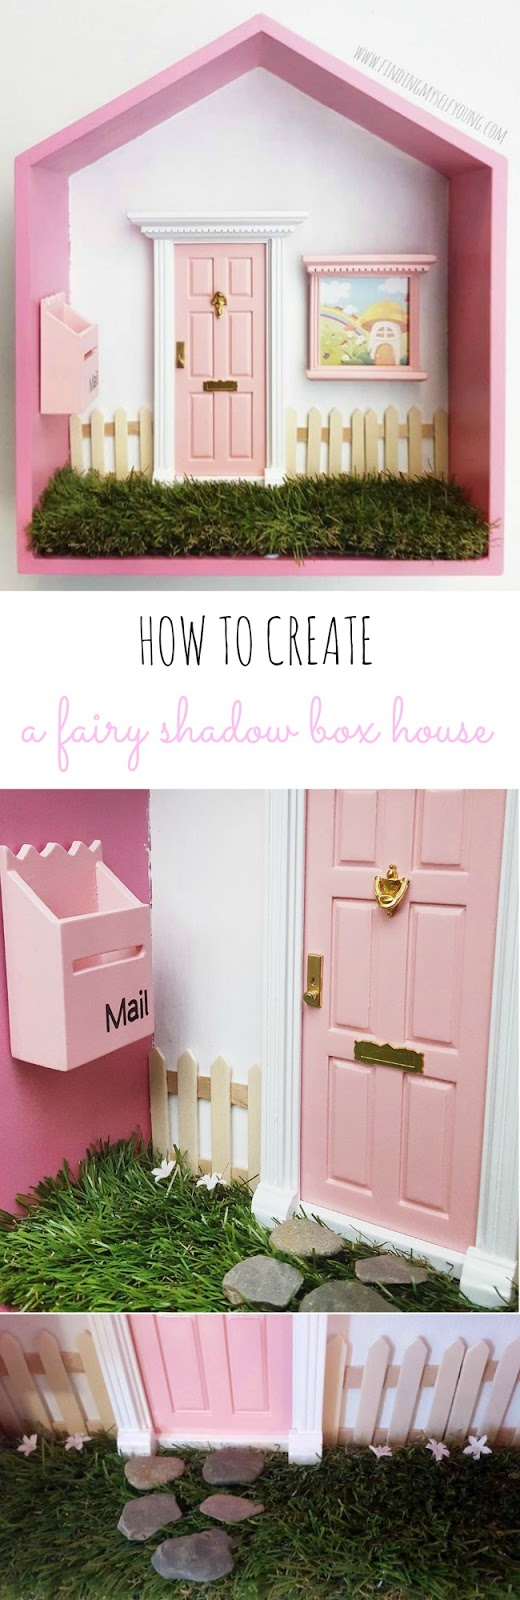 How to transform a shadow box into a fairy house